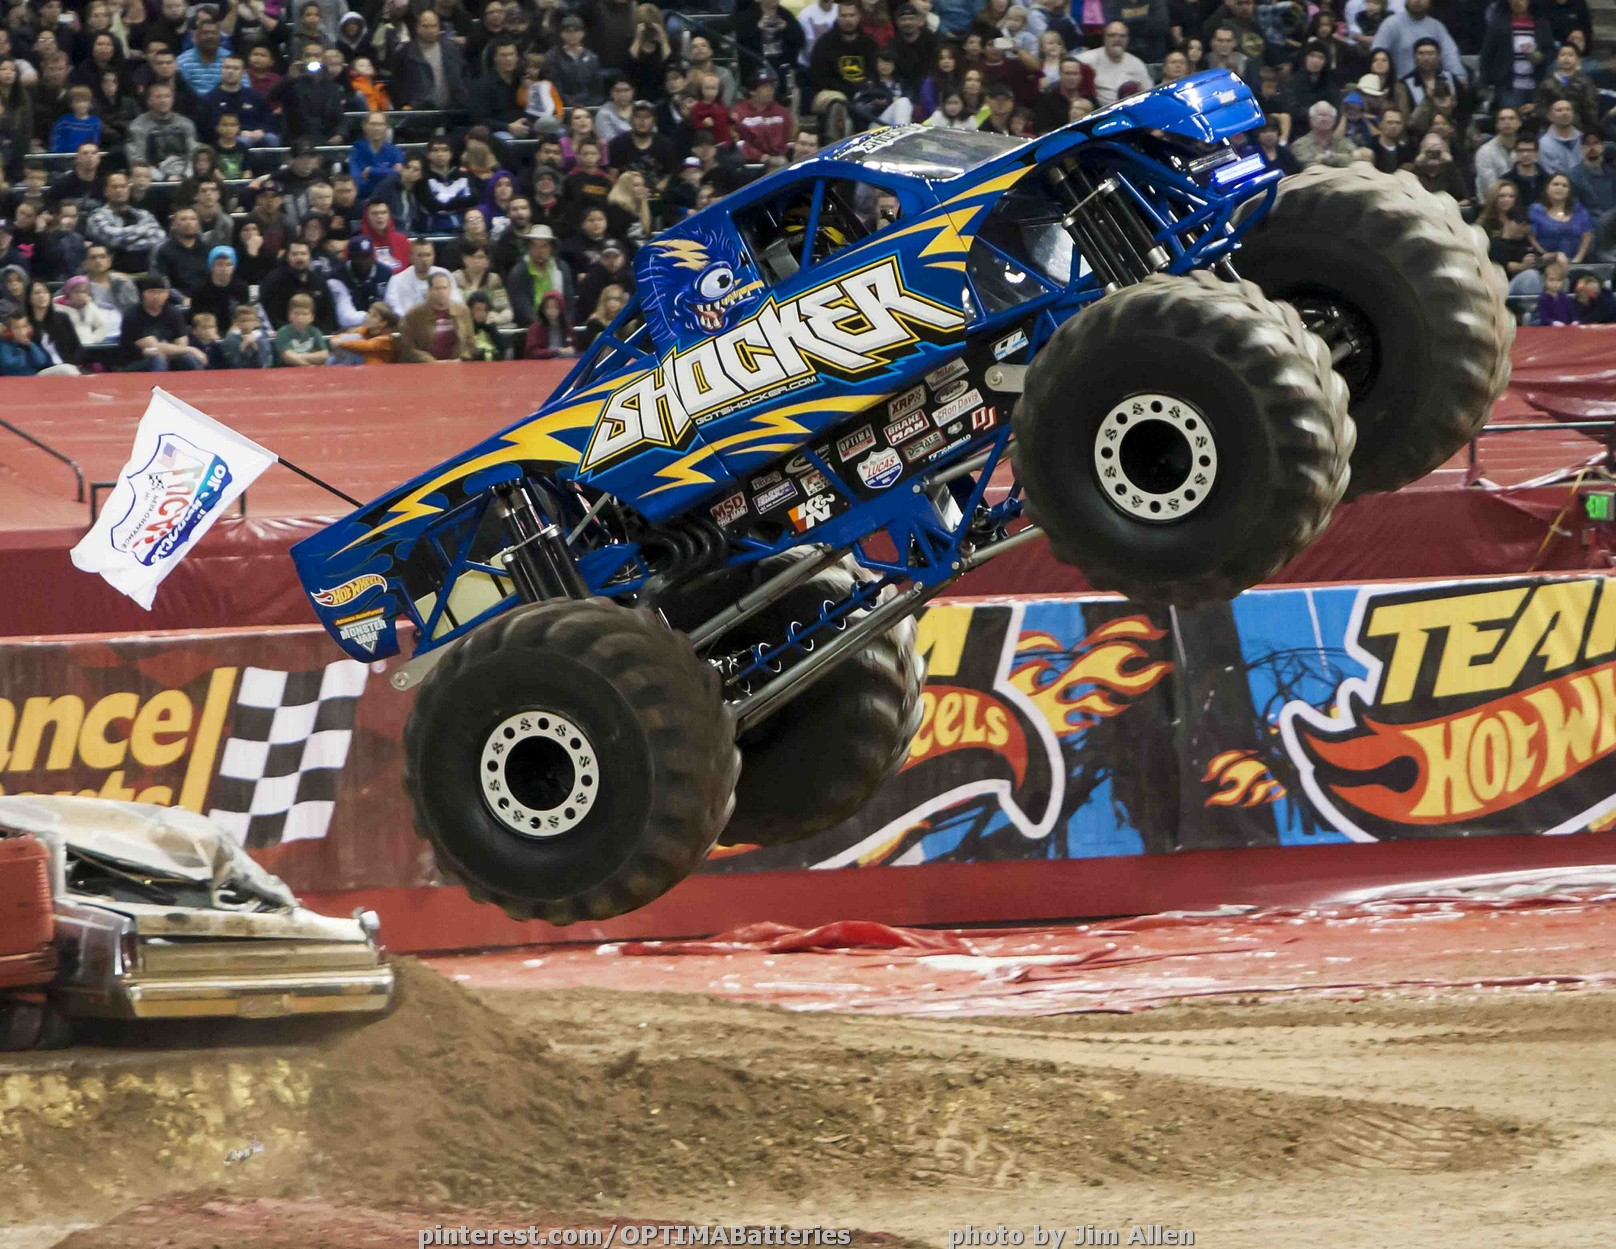 The Optima Sponsored Shocker Monster Truck